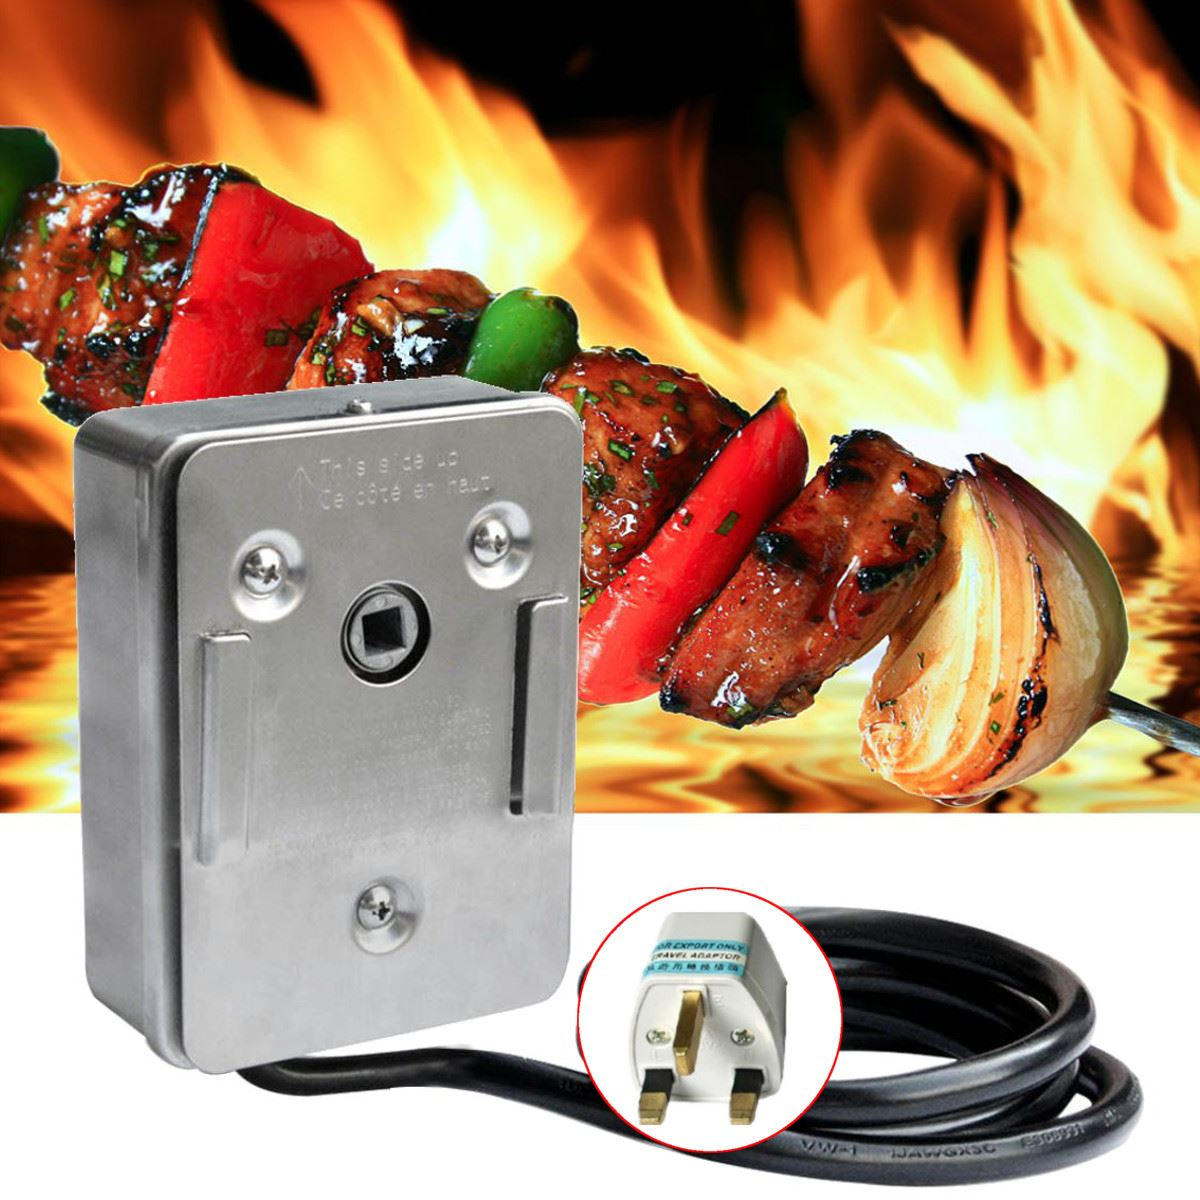 220V Onlyfire Universal Grill Electric Replacement BBQ Grill Heavy Duty Stainless Steel Rotisserie Motor Electric Motor diy stainless steel motor universal coupling silver 4 x 4mm